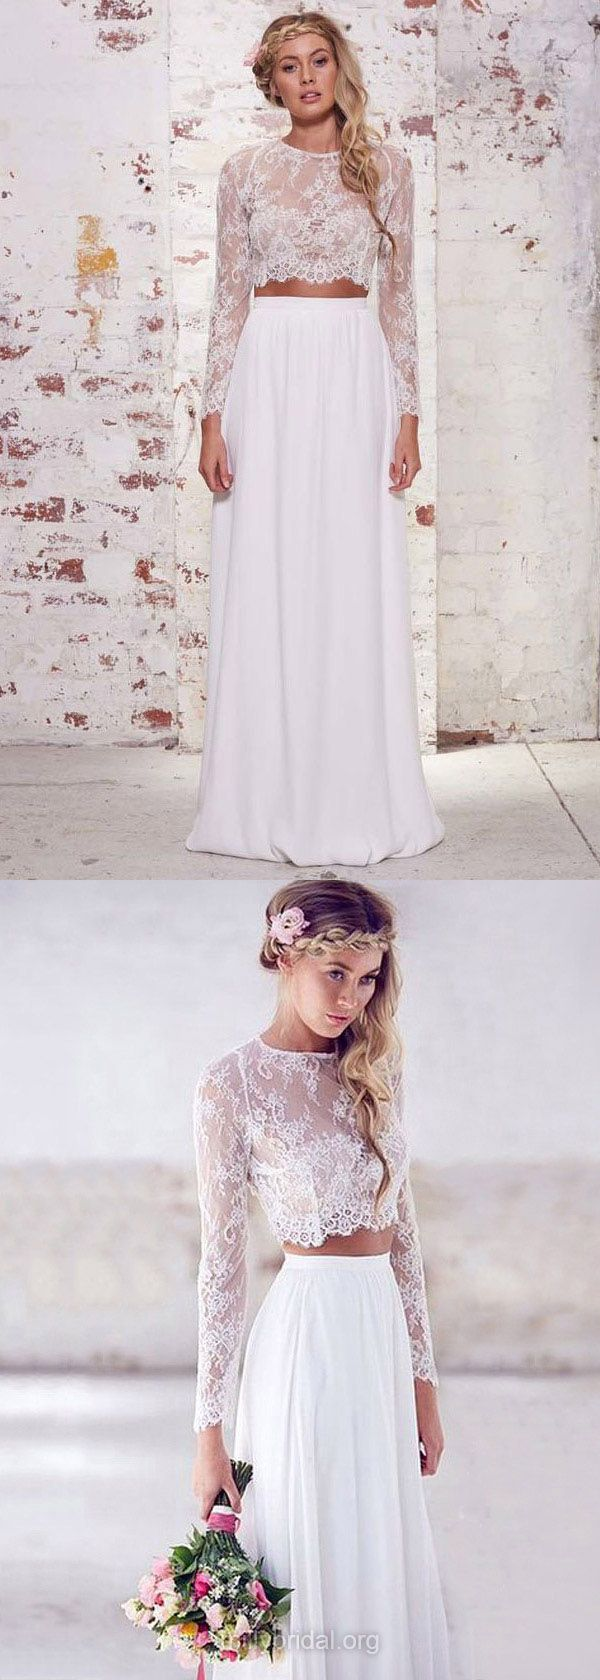 White prom dresses long prom dresses two piece prom dresses lace